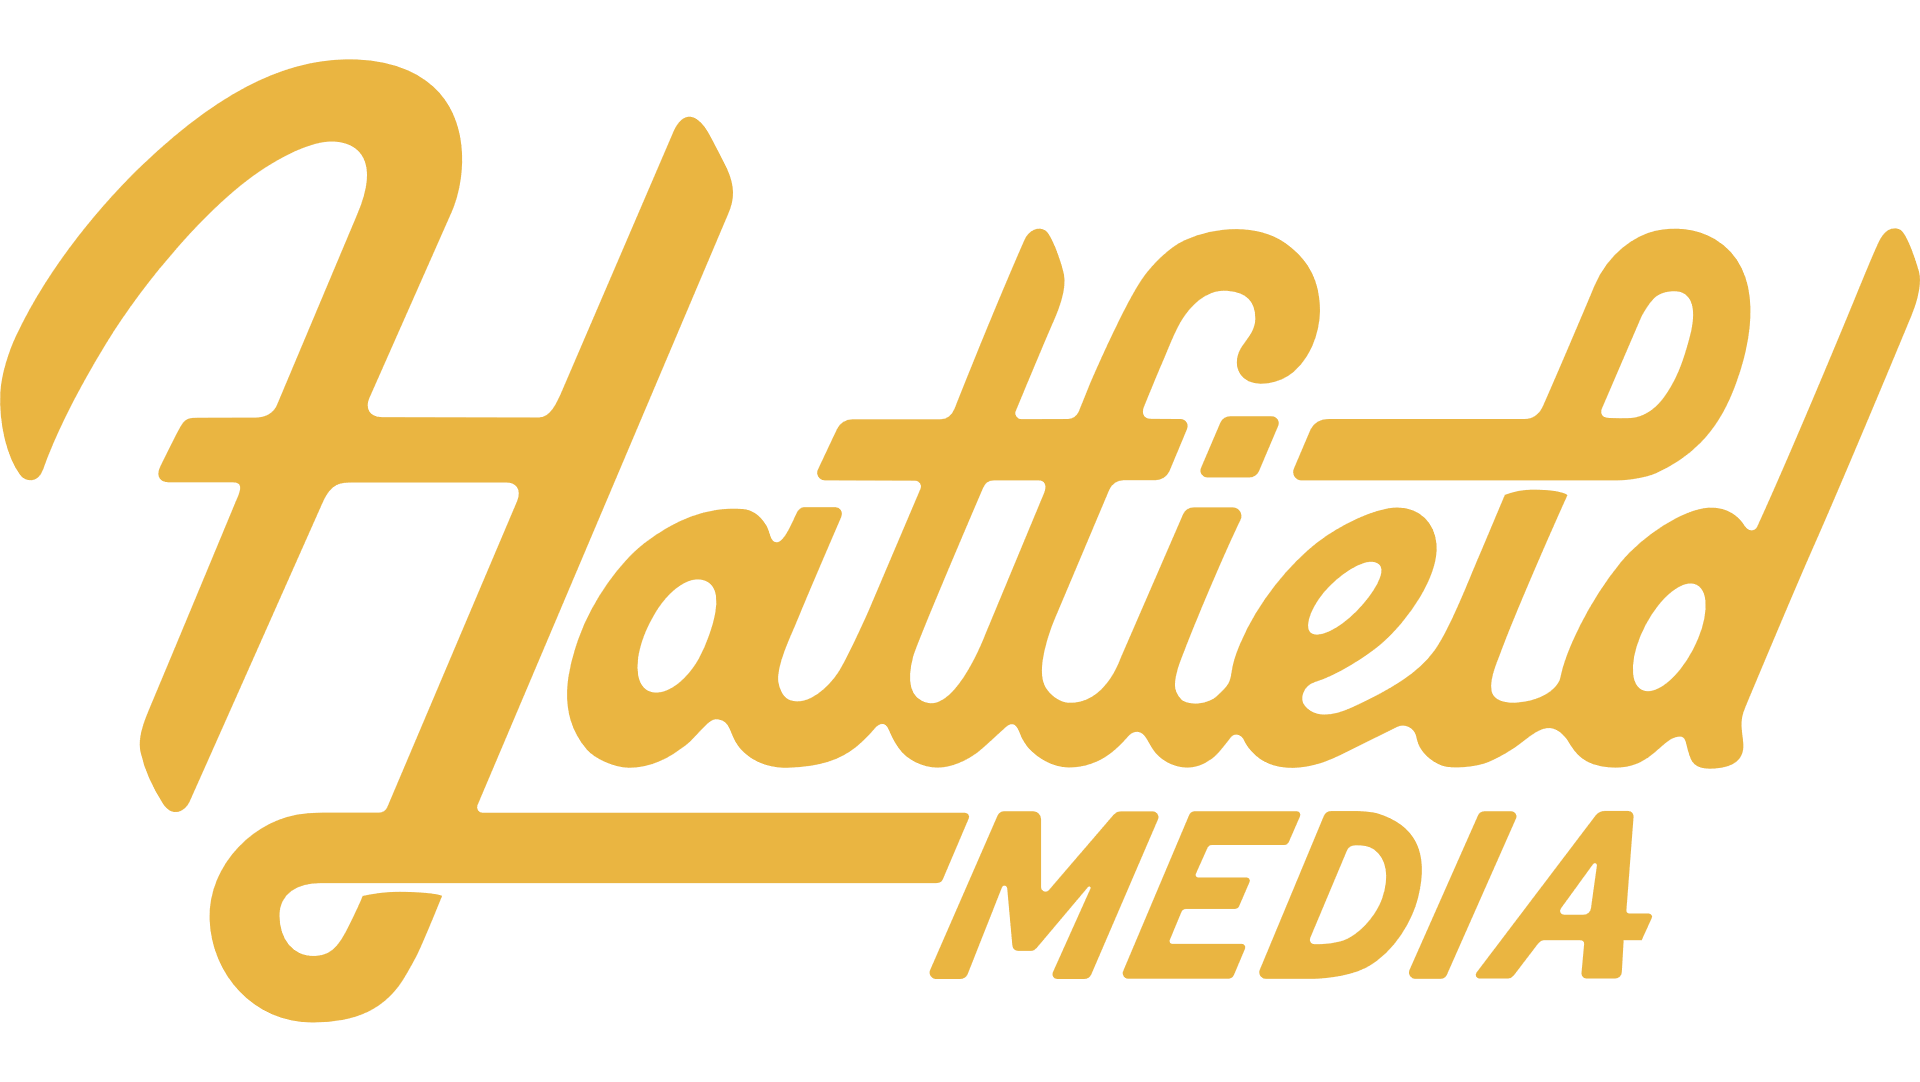 Website Design & Marketing Agency - Hatfield Media